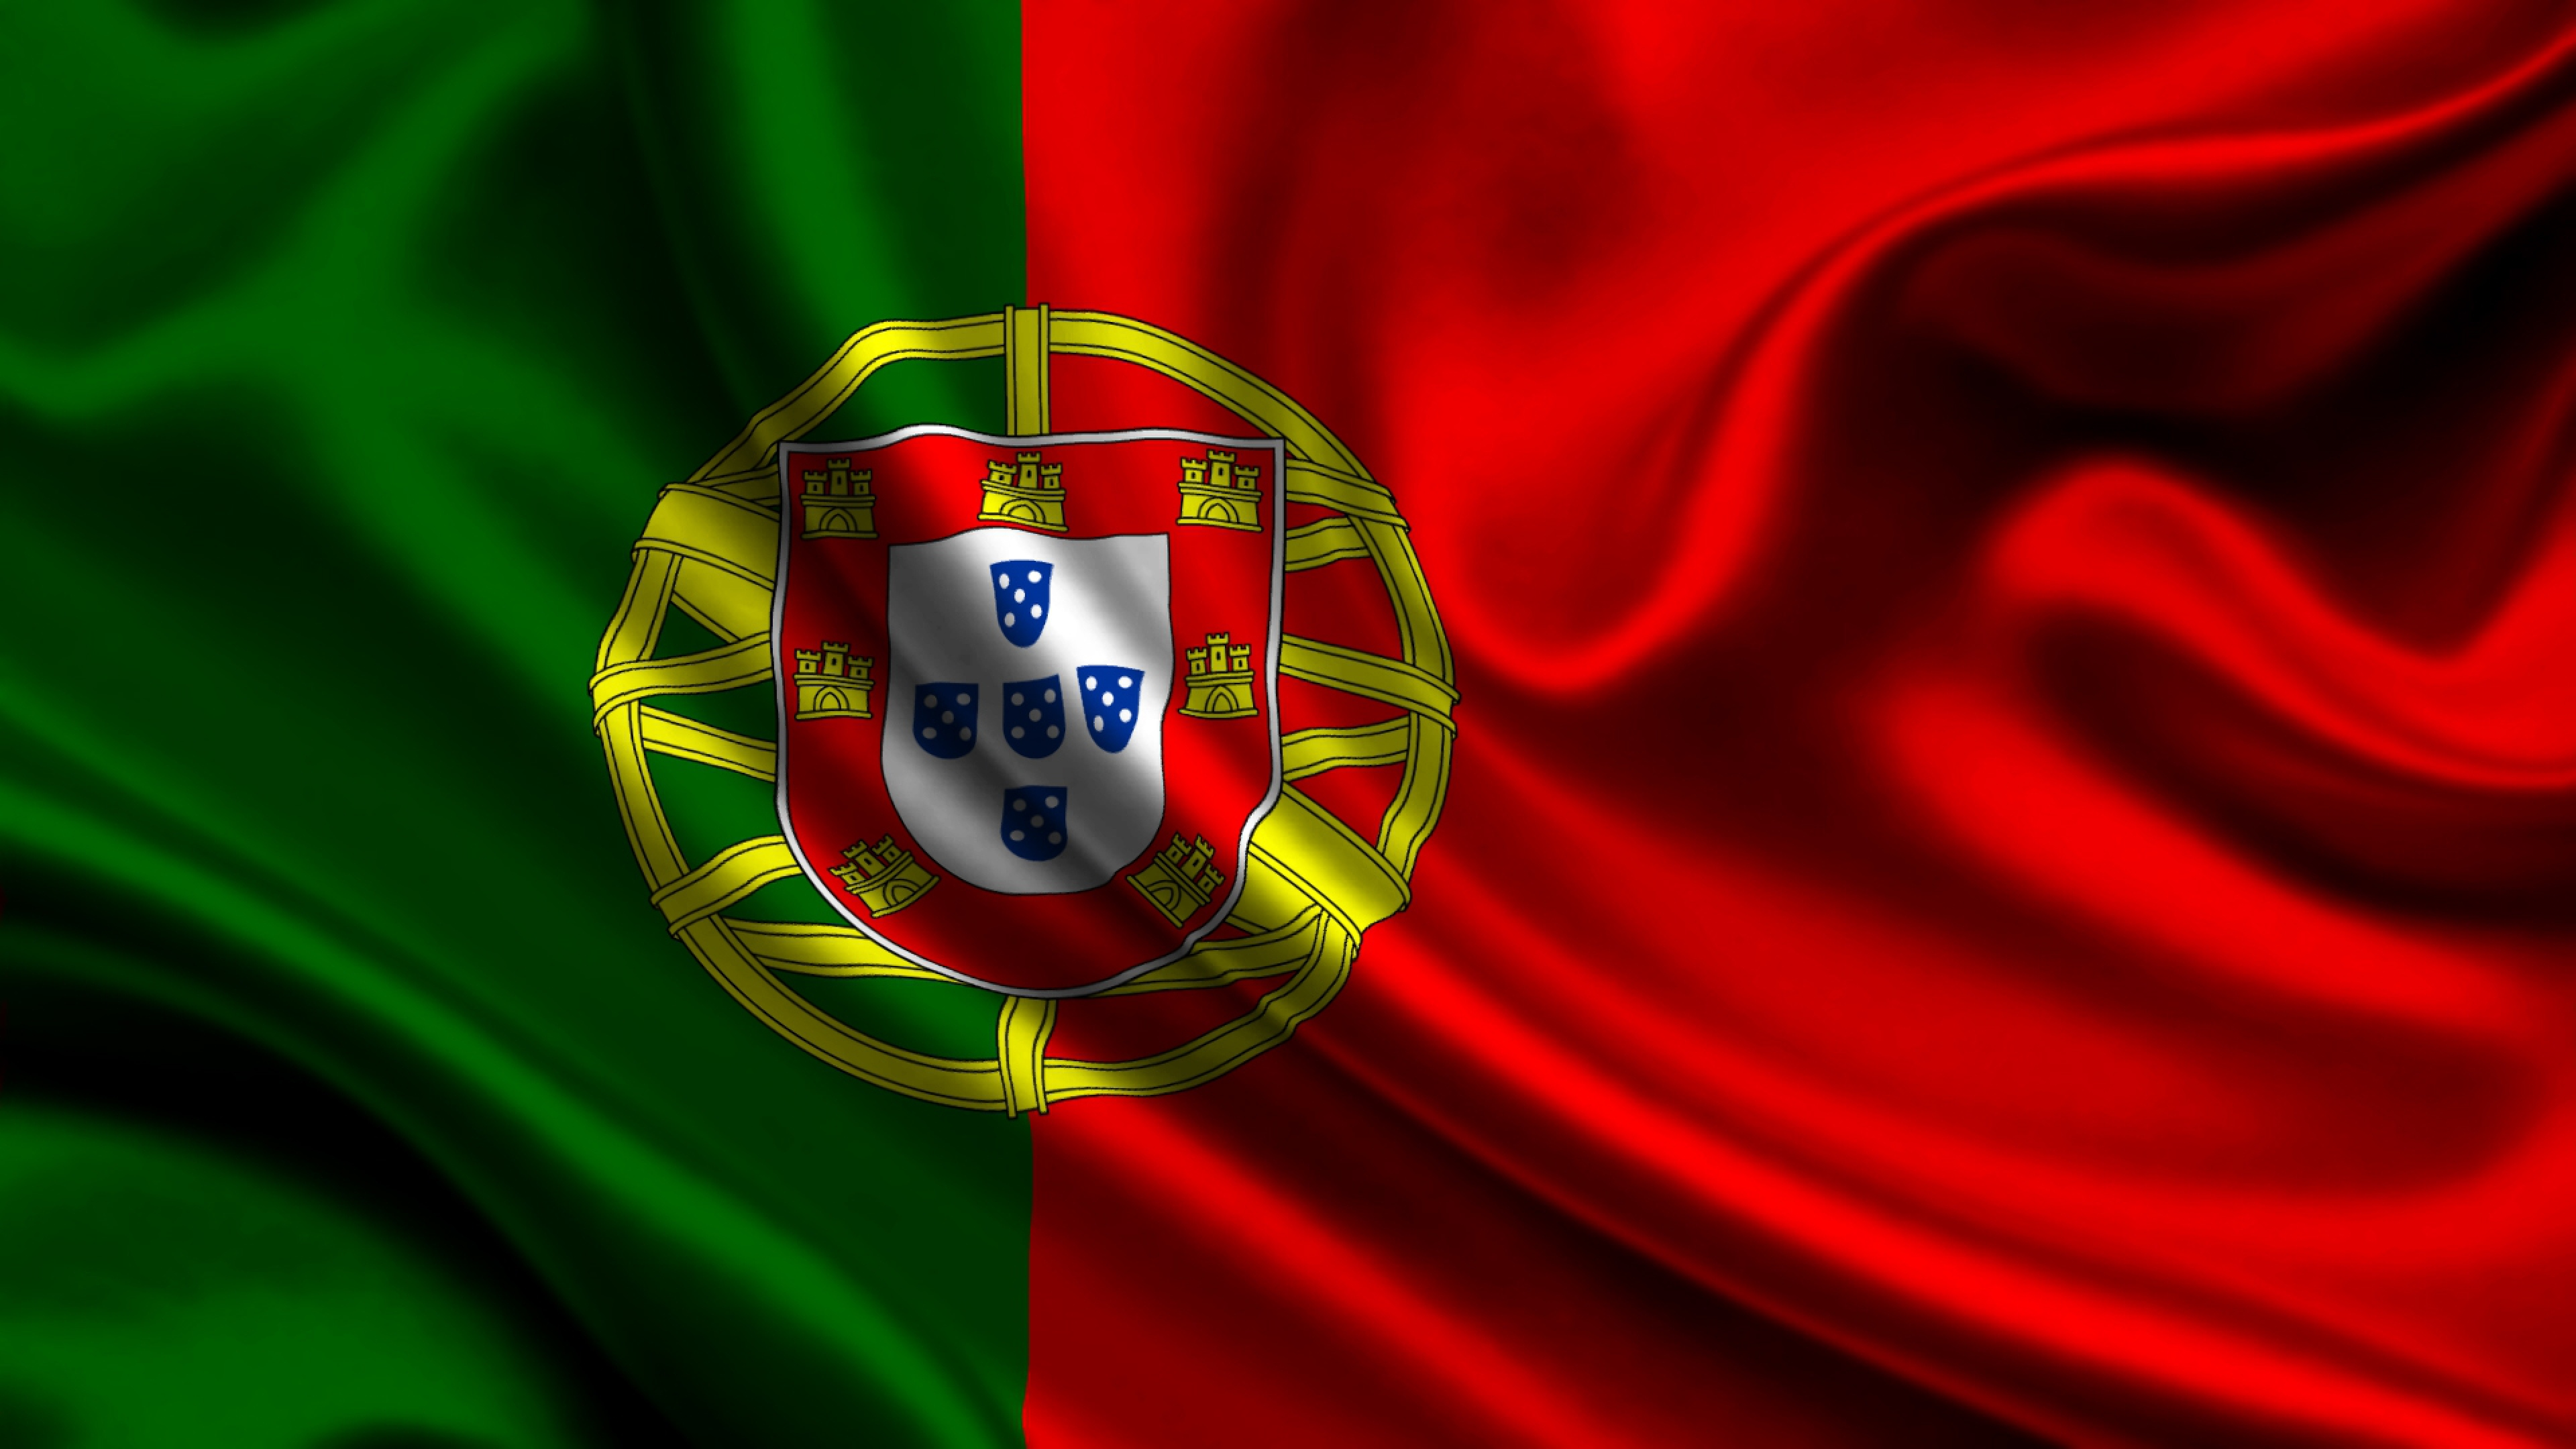 3840x2160 Wallpaper portugal, satin, flag, symbols